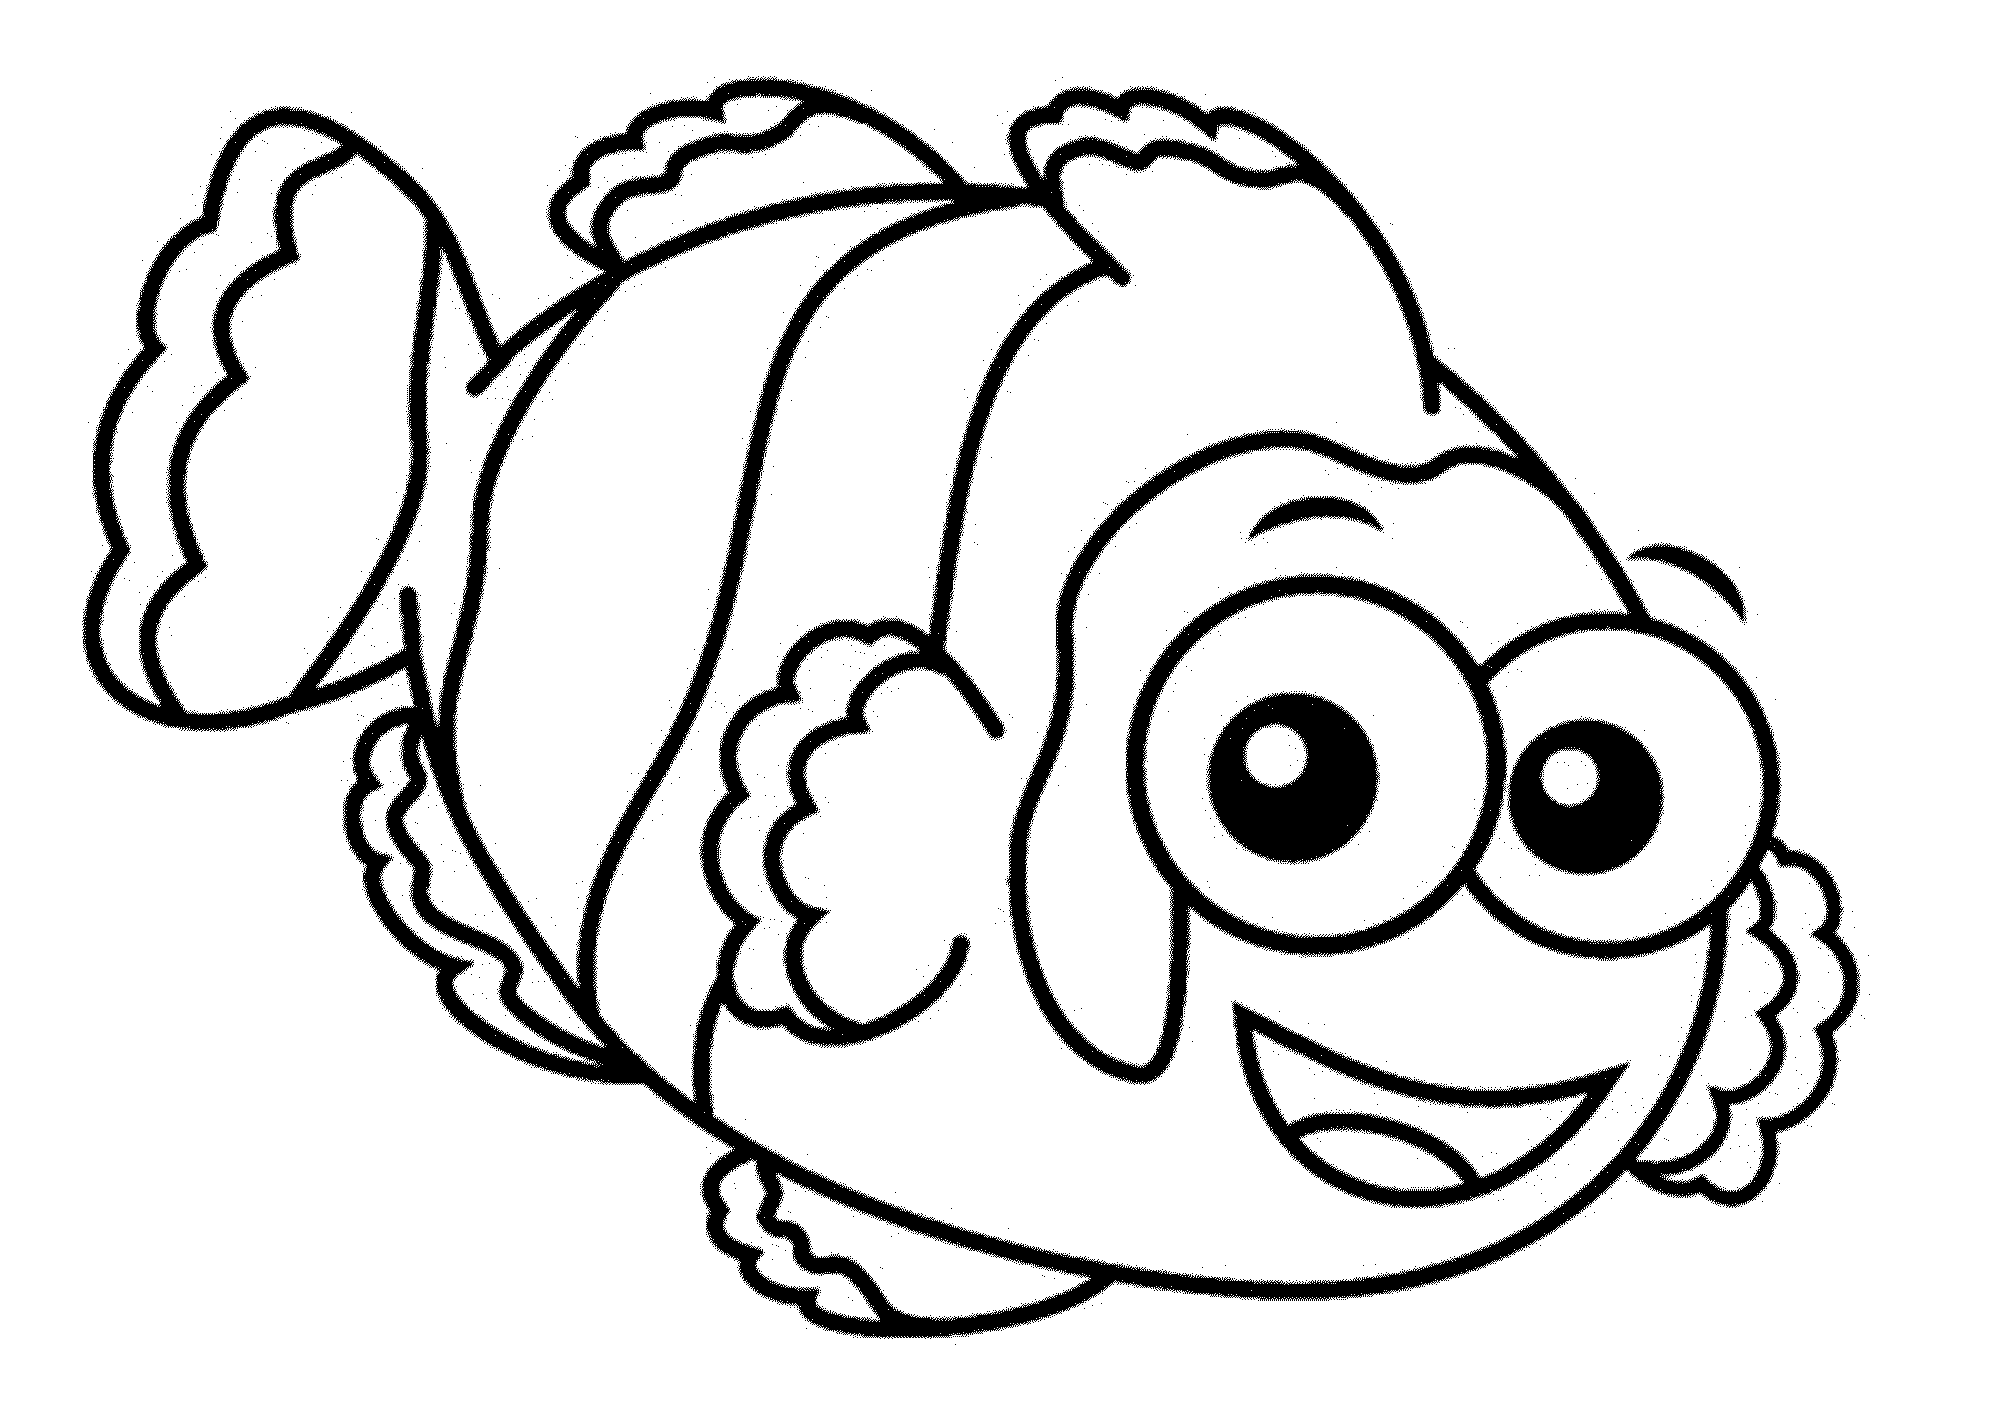 fish coloring for kids print download cute and educative fish coloring pages fish kids for coloring